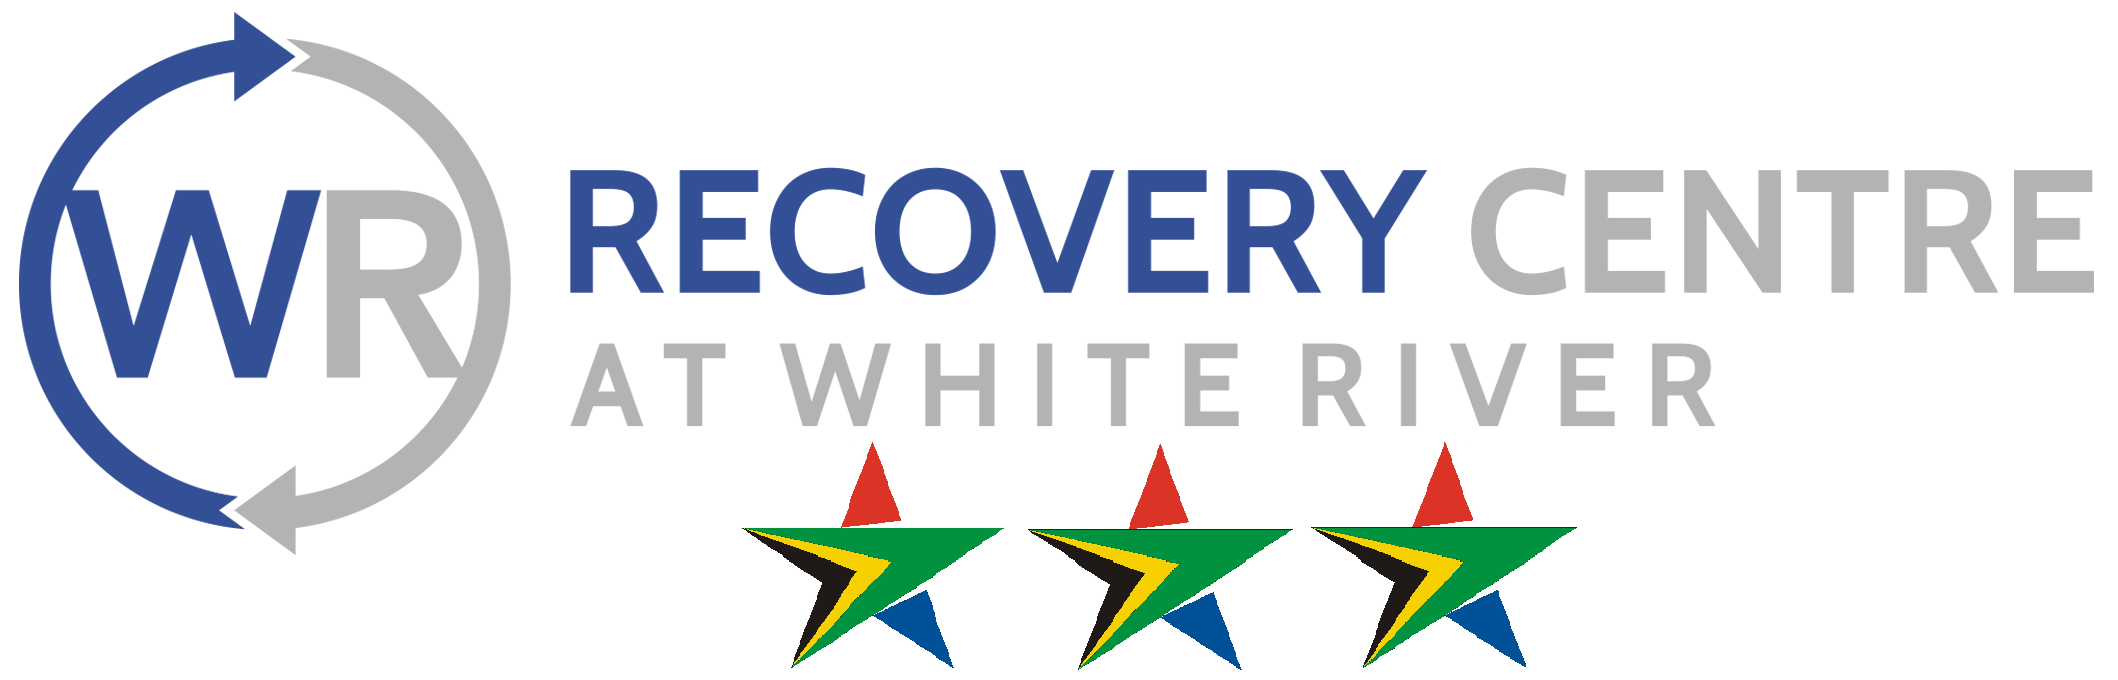 Recovery-white-river-rehab-grading-council.png